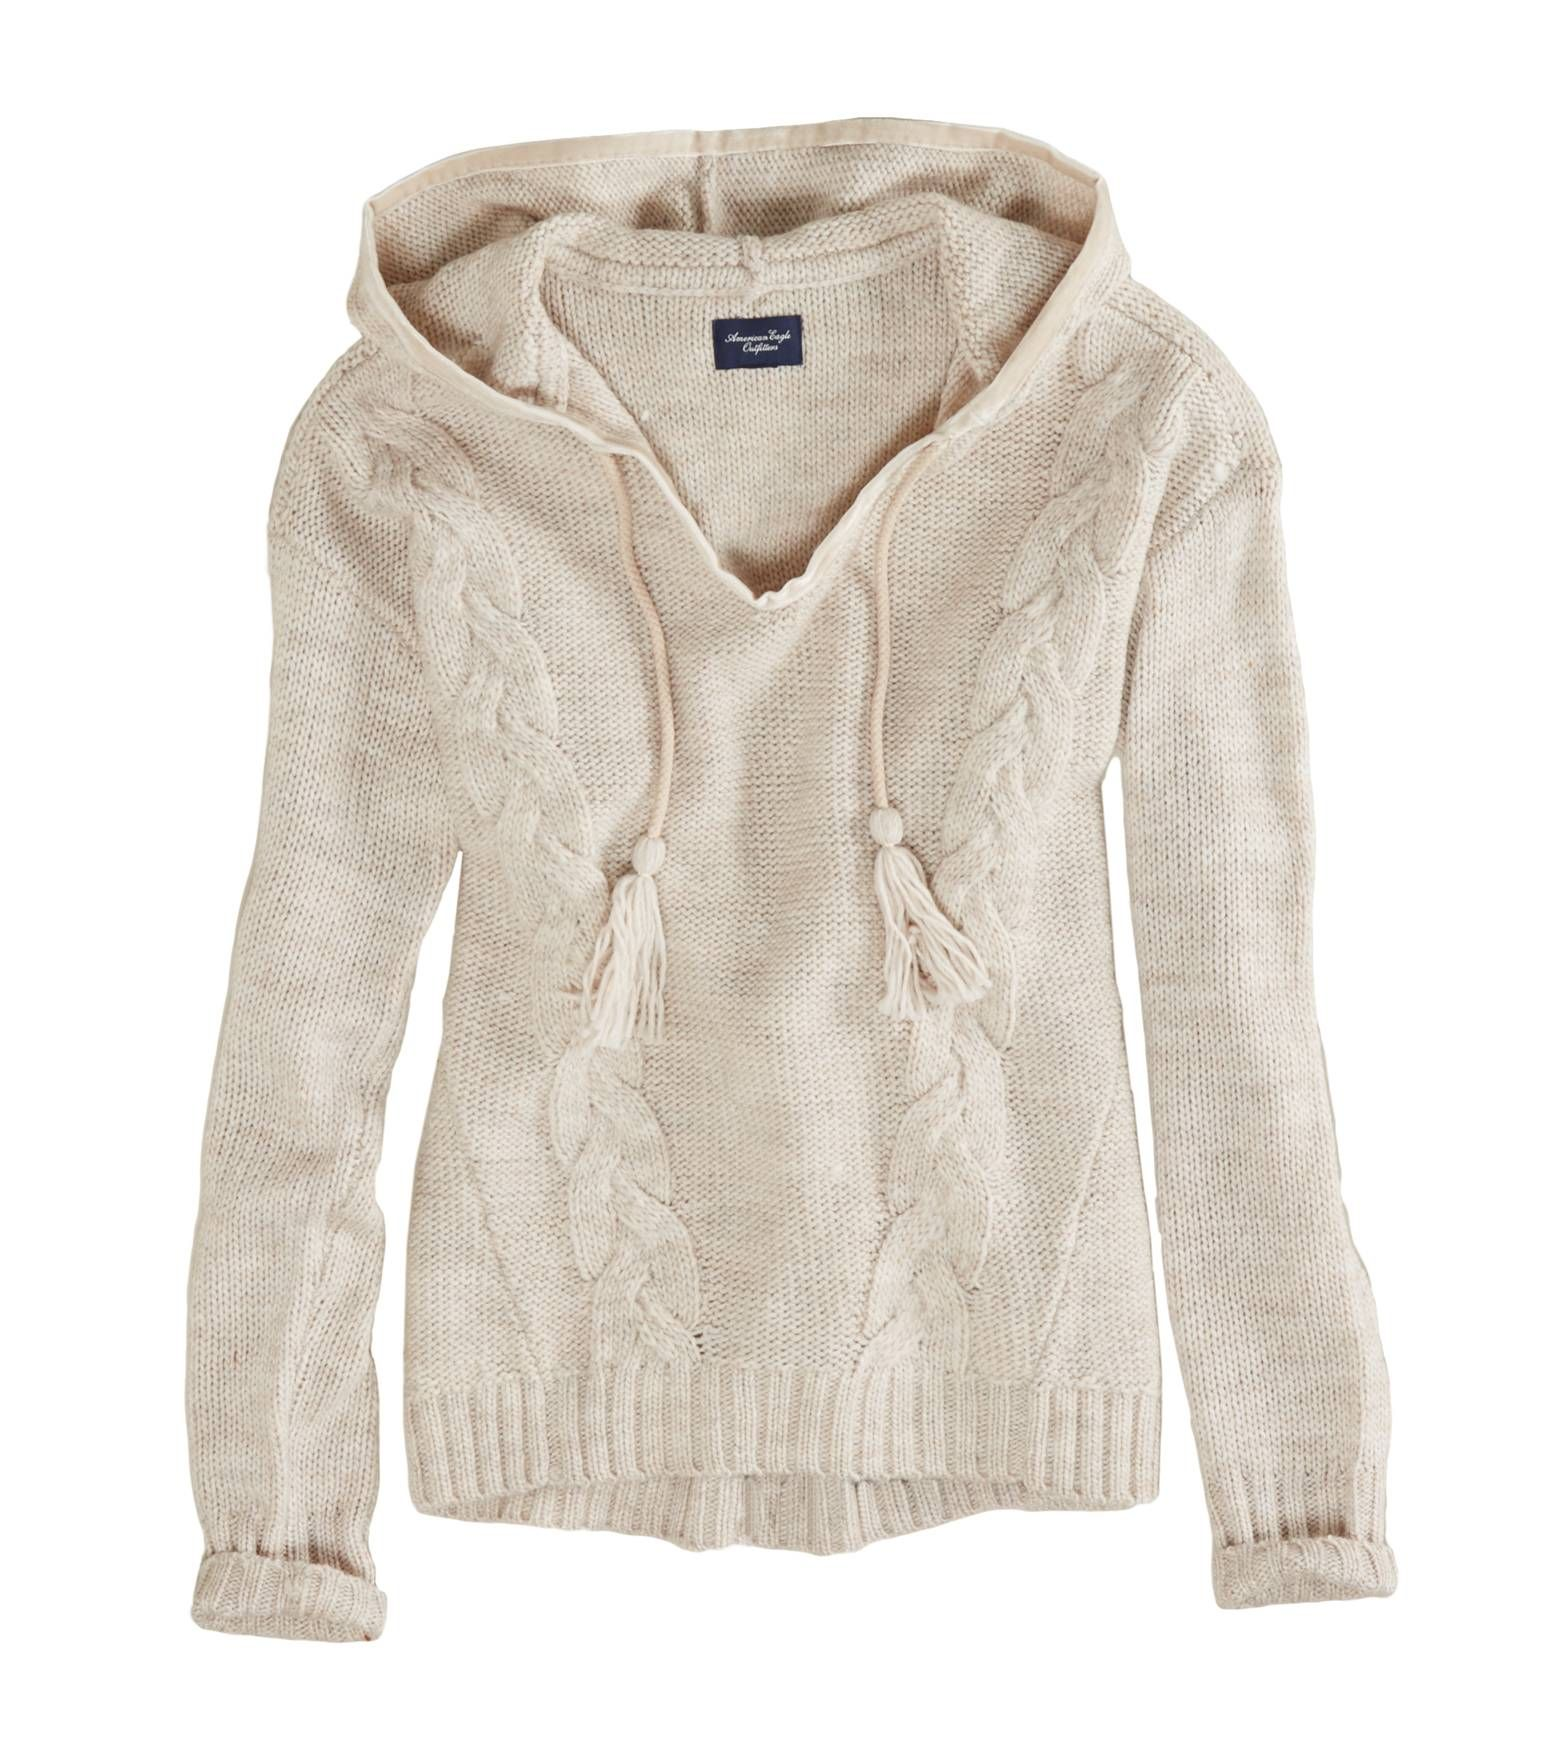 AEO Open Knit Cardigan